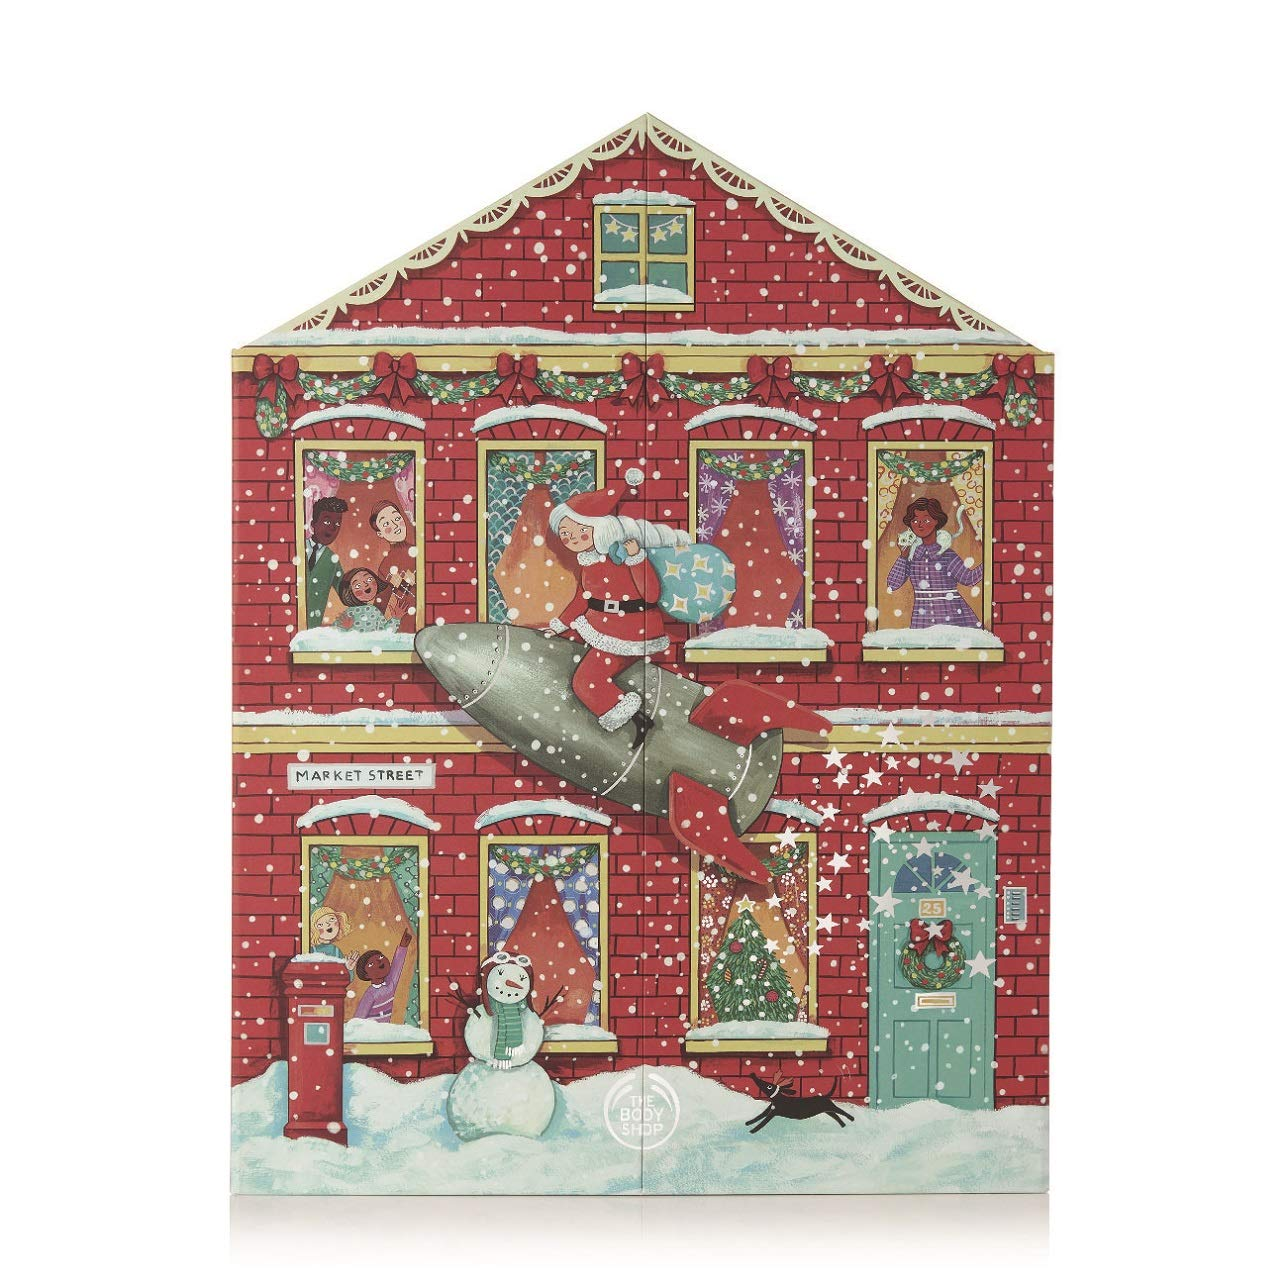 The Body Shop Deluxe Advent Calendar, 25pc Gift Set of 100% Vegan Skincare, Body Care, and Makeup Treats by The Body Shop